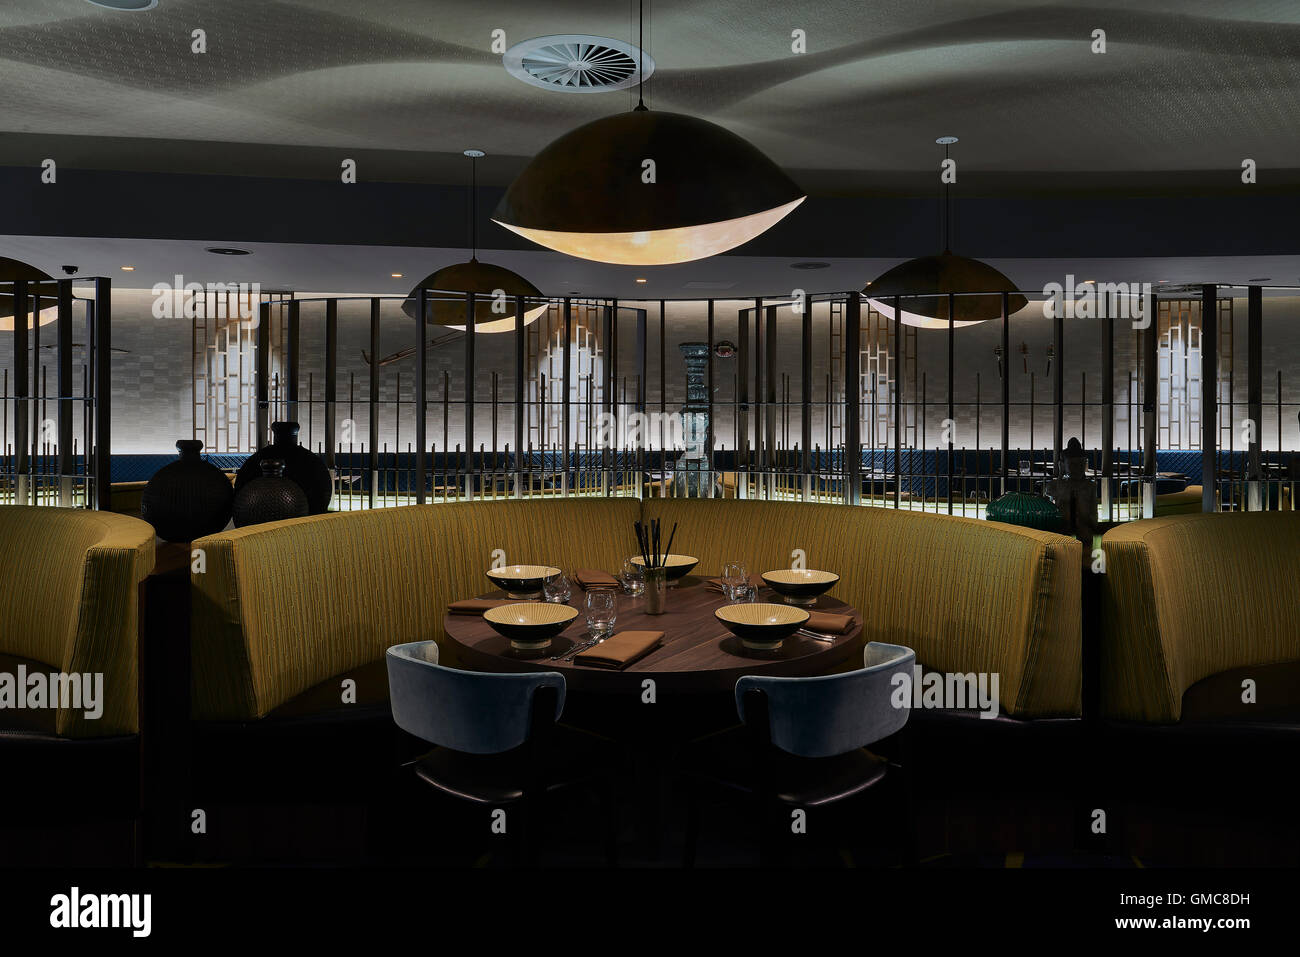 Syke Restaurant Restaurant Booth Seating Campbelltown Catholic Club Kyobi